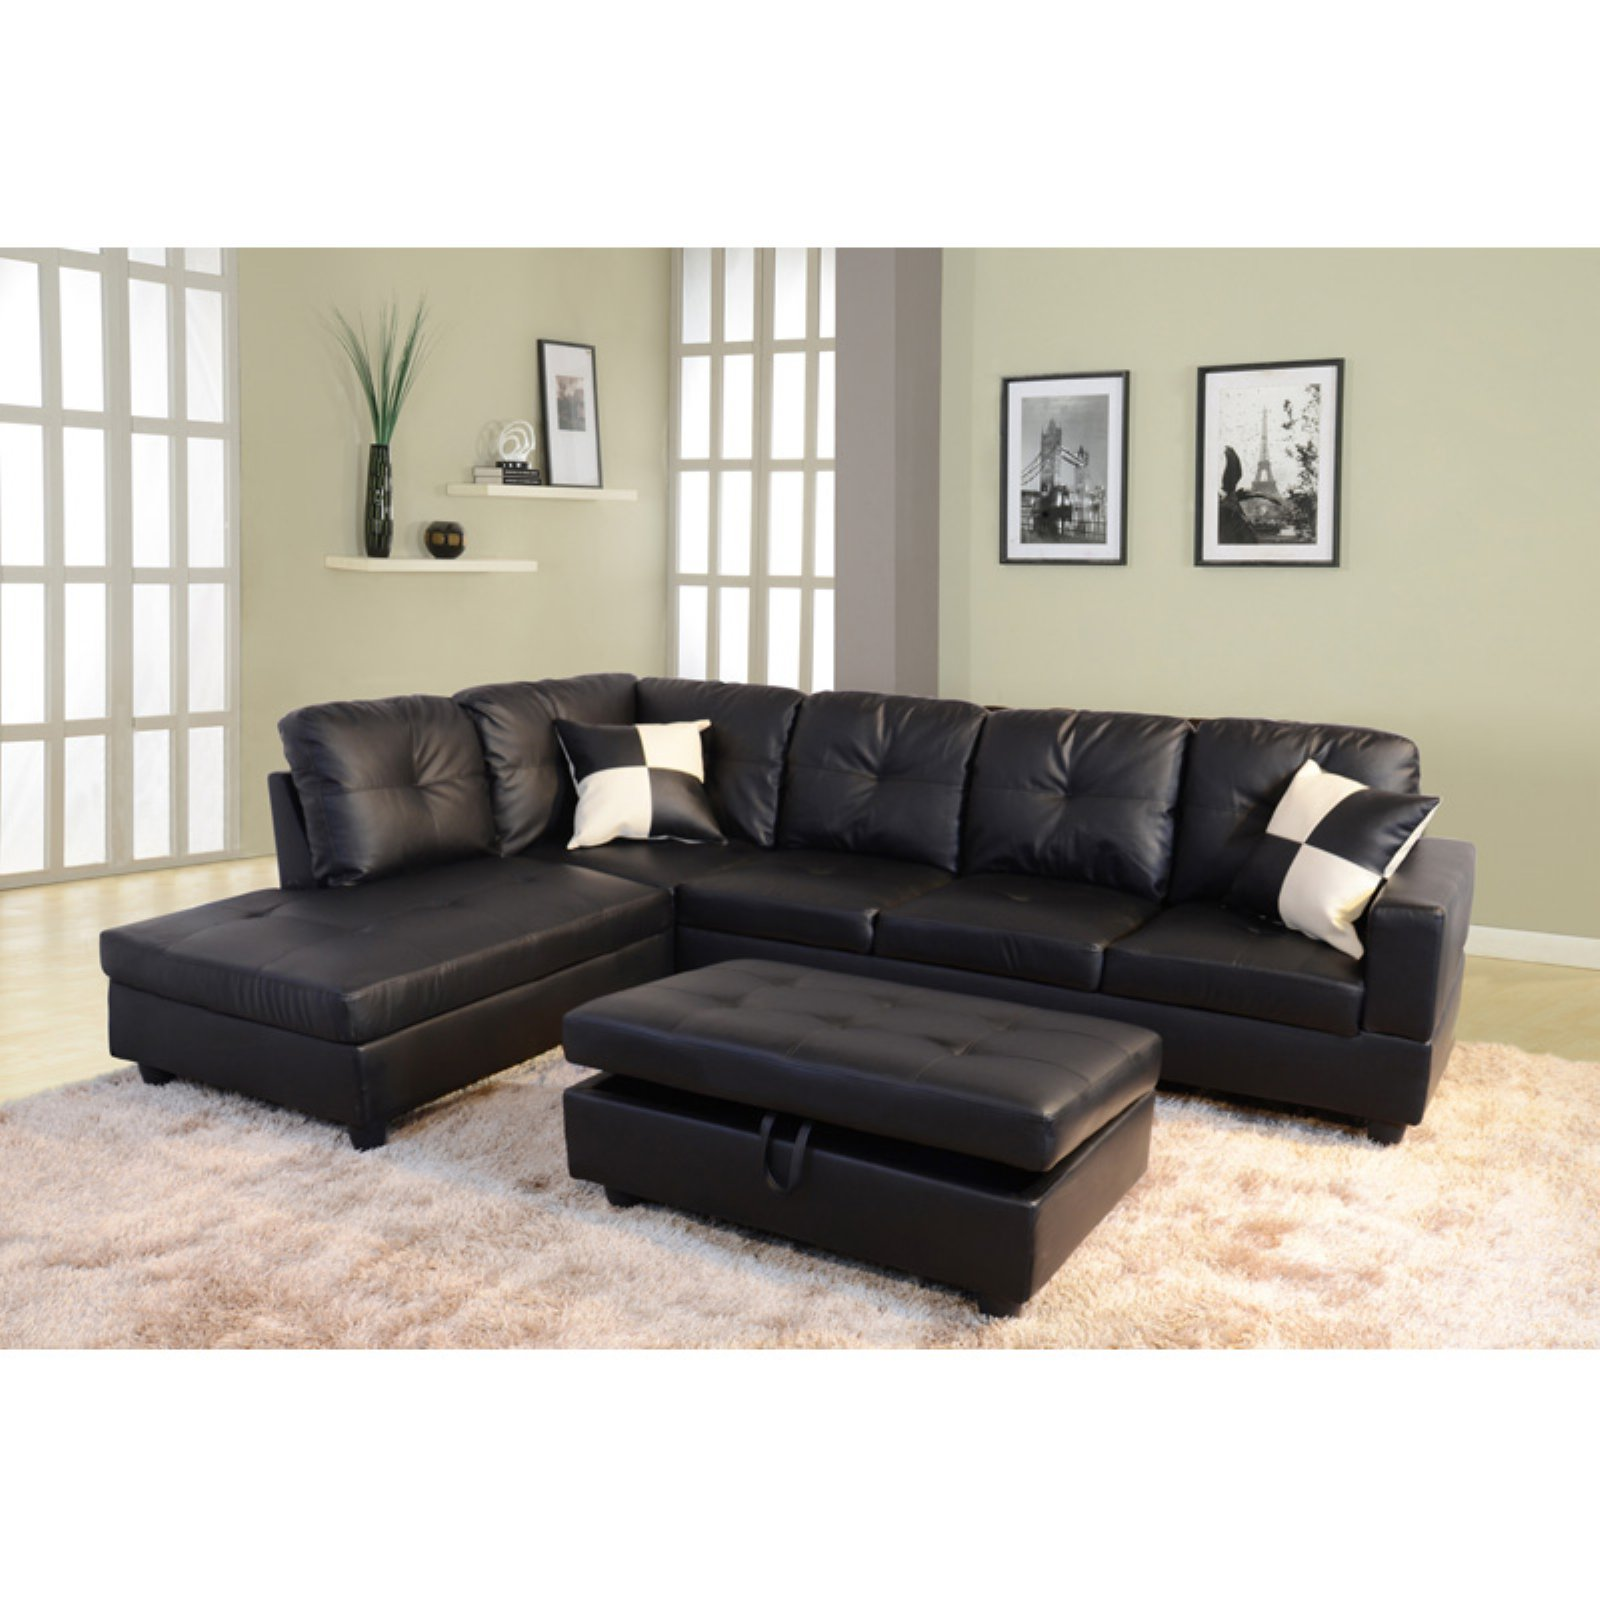 Beverly Fine Furniture 3-Piece Faux Leather Sectional Sofa Set with Storage Ottoman by